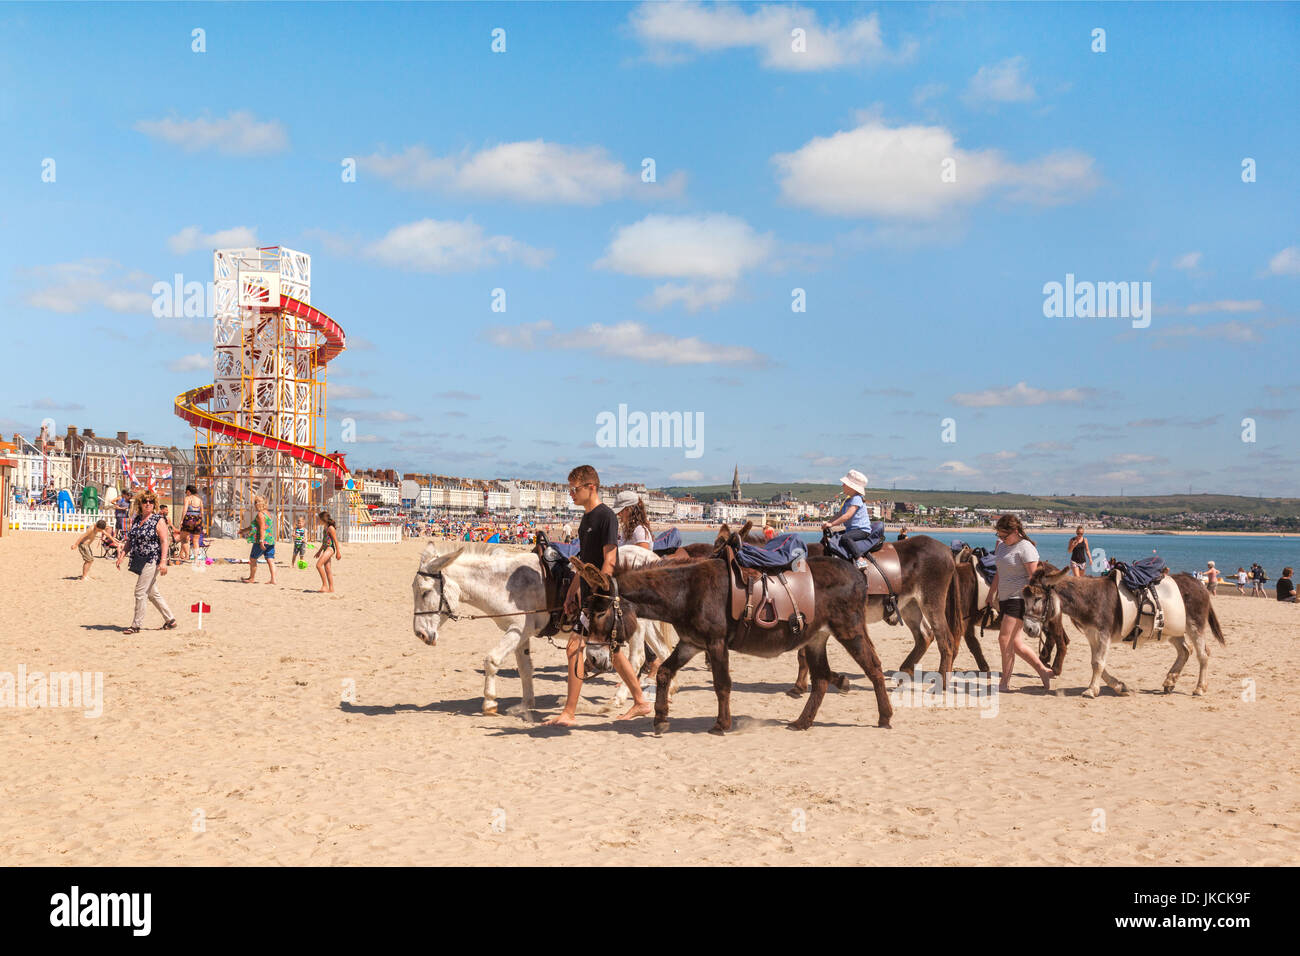 2 July 2017: Weymouth, Dorset, England, UK - Donkey rides on the beach at Weymouth, Dorset, England, UK. - Stock Image